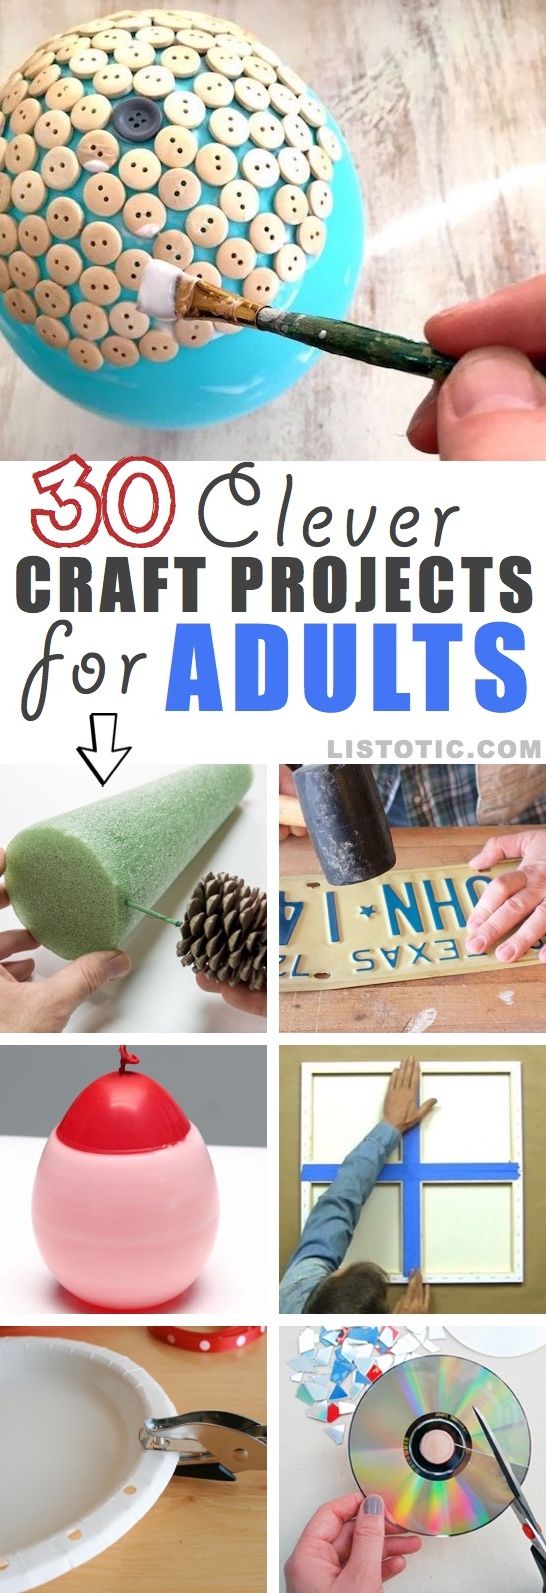 Easy Diy Craft Ideas That Will Spark Your Creativity For